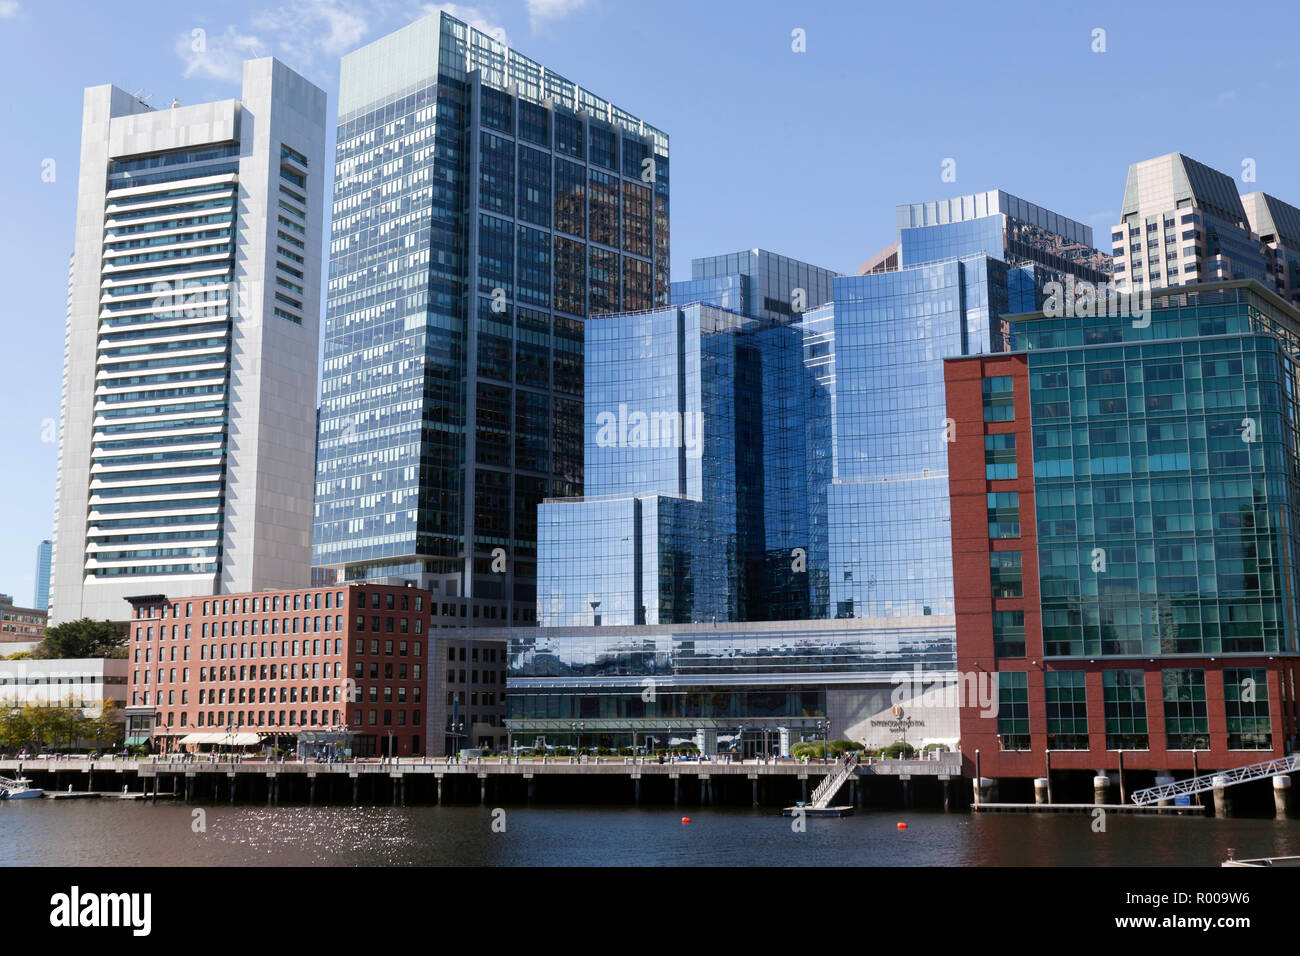 View of the Intercontinental Hotel  across the Fort Point Channel, in downtown Boston Stock Photo